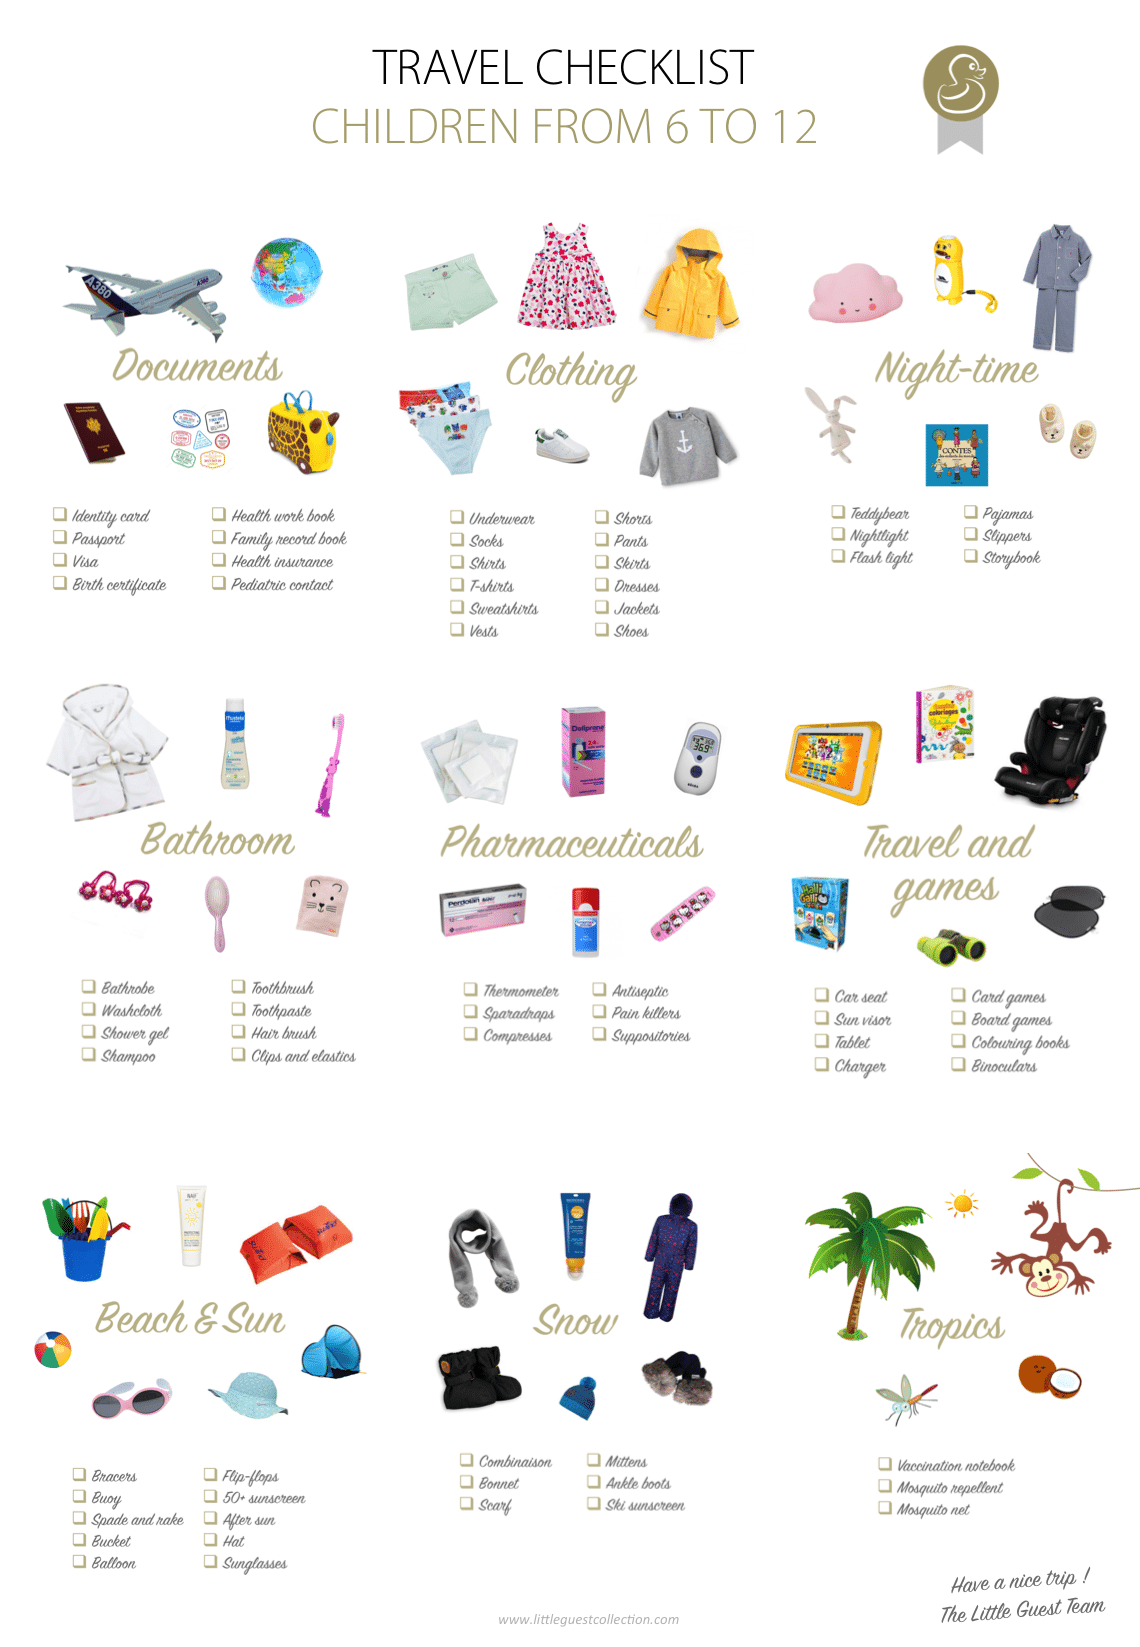 Travel checklist for children from 6 years, 7 years, 8 years, 9 years, 10 years, 11 years to 12 years (documents, clothing, night-time, bathroom, meals, pharmaceuticals, travel, games, sun, beach, tropics et snow)